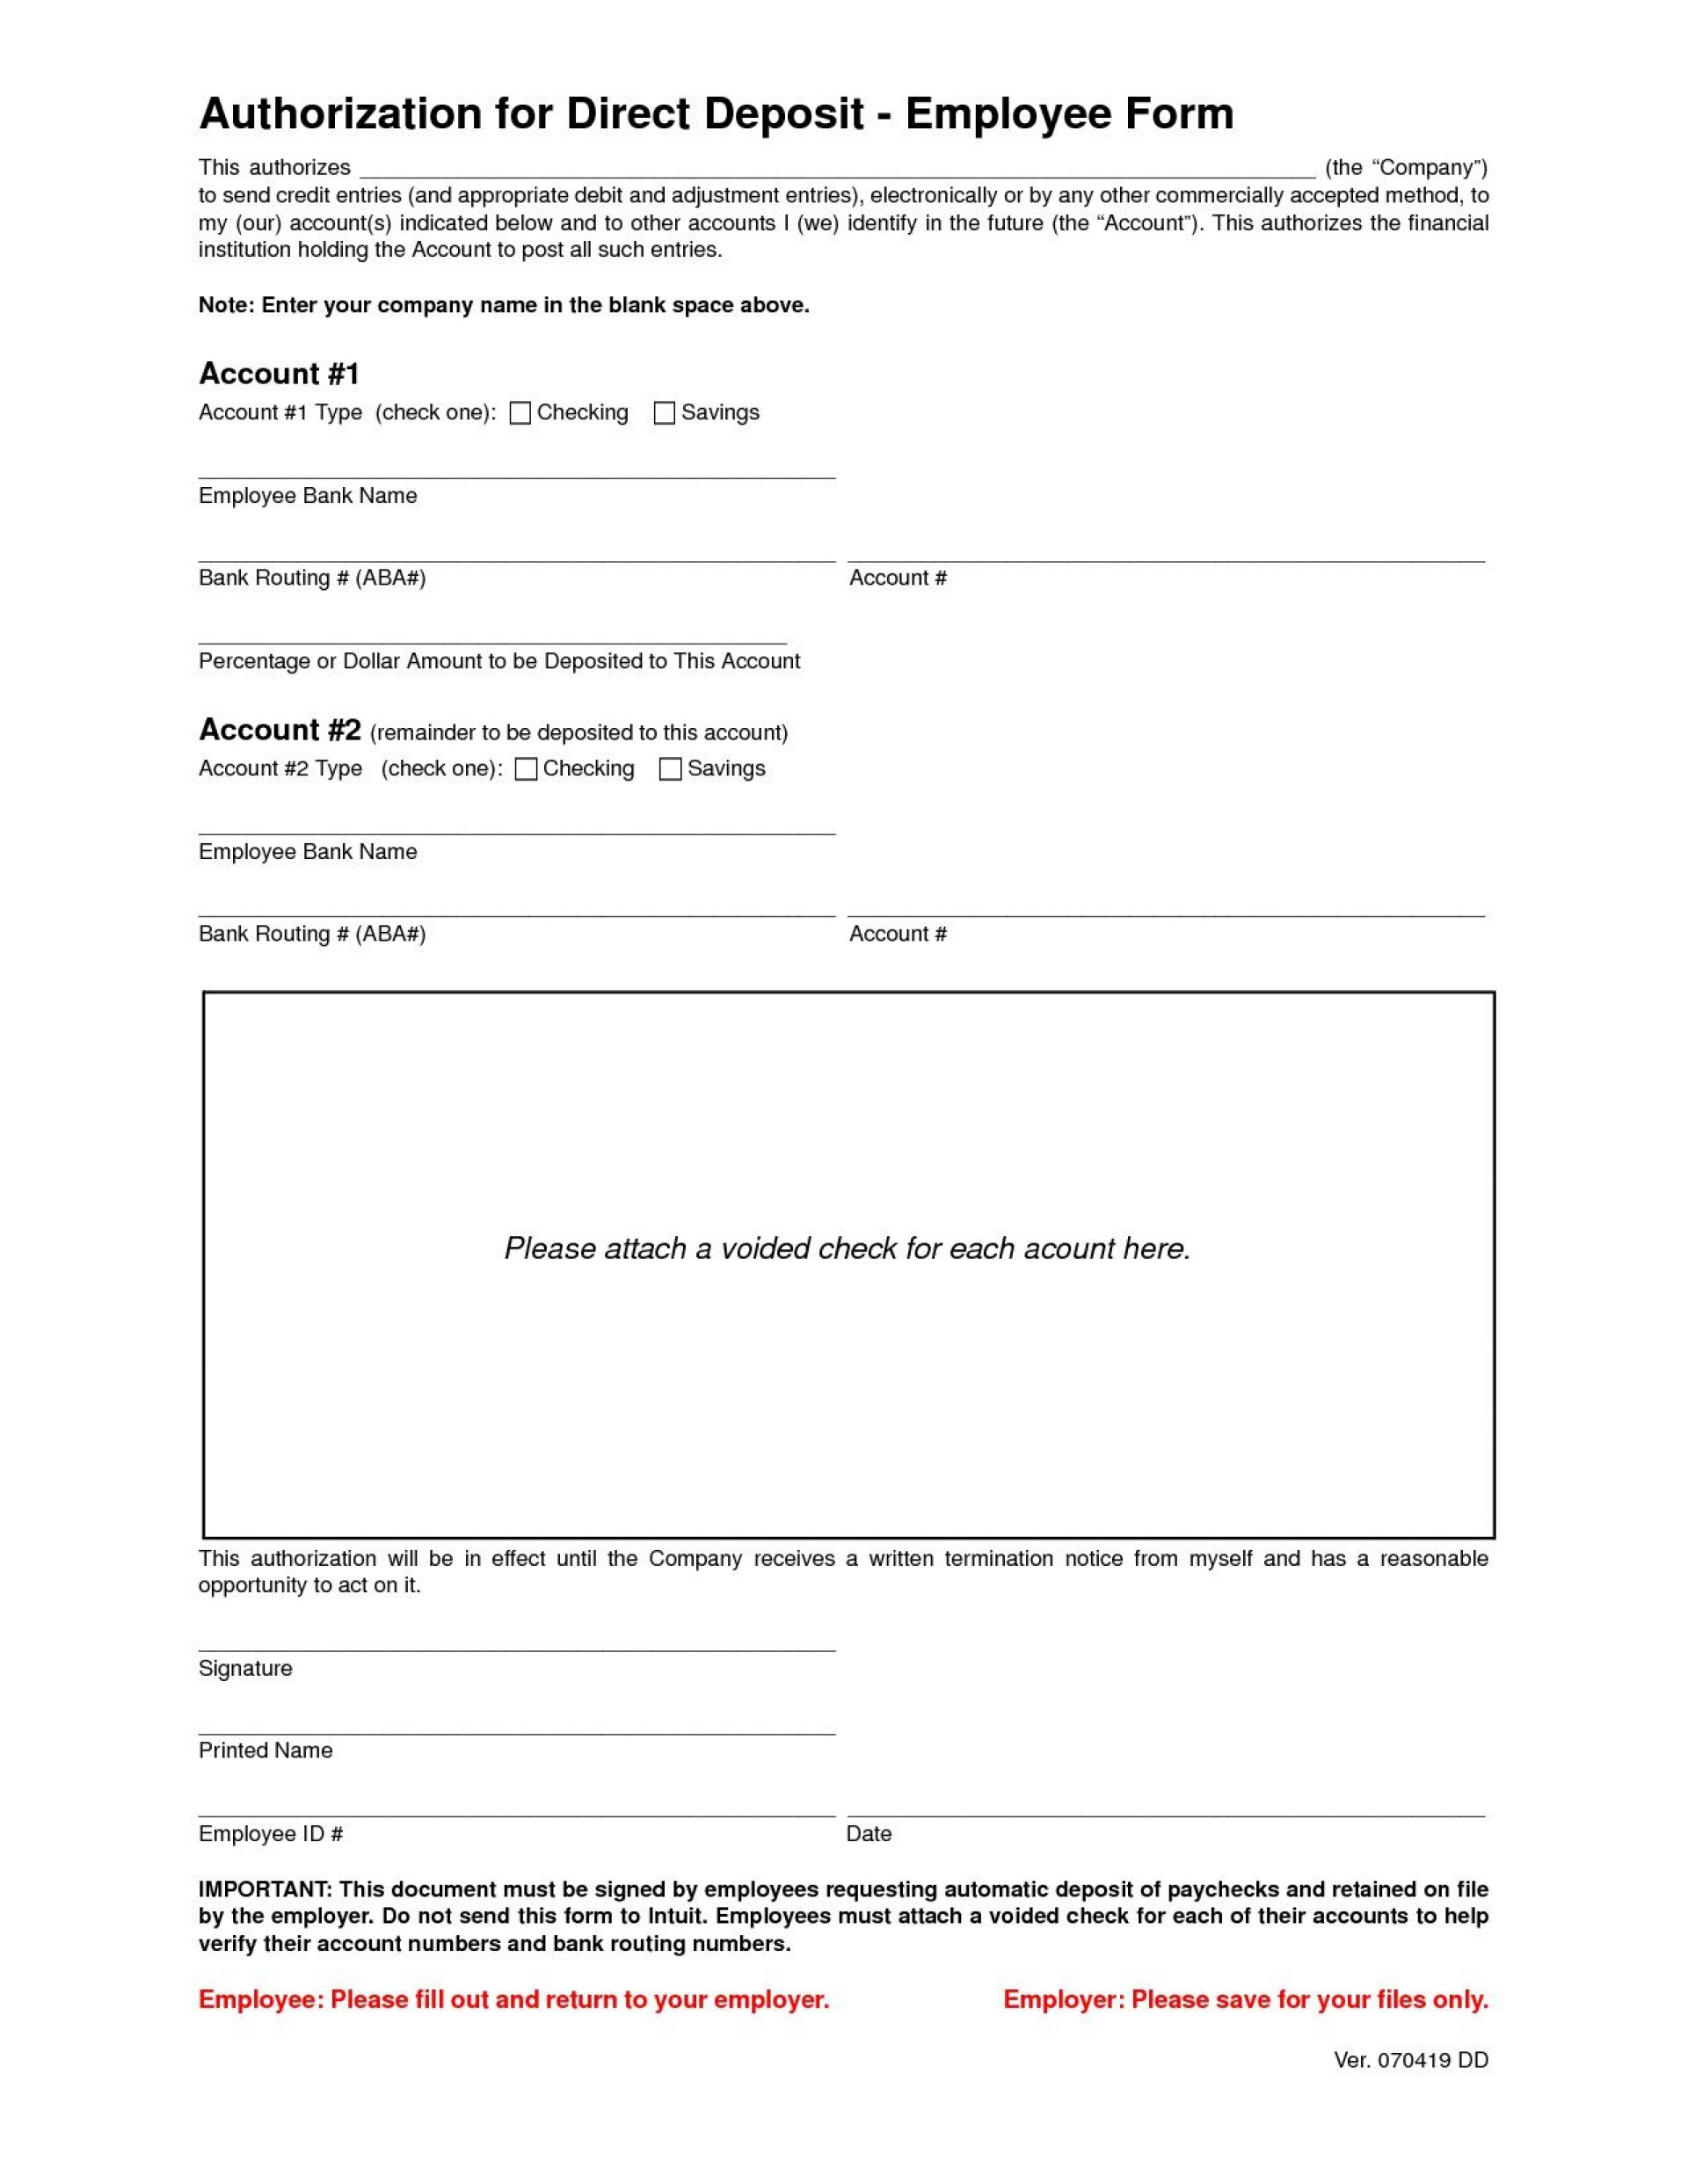 001 Stunning Direct Deposit Form Template Highest Quality  Multiple Account Ach Authorization1920